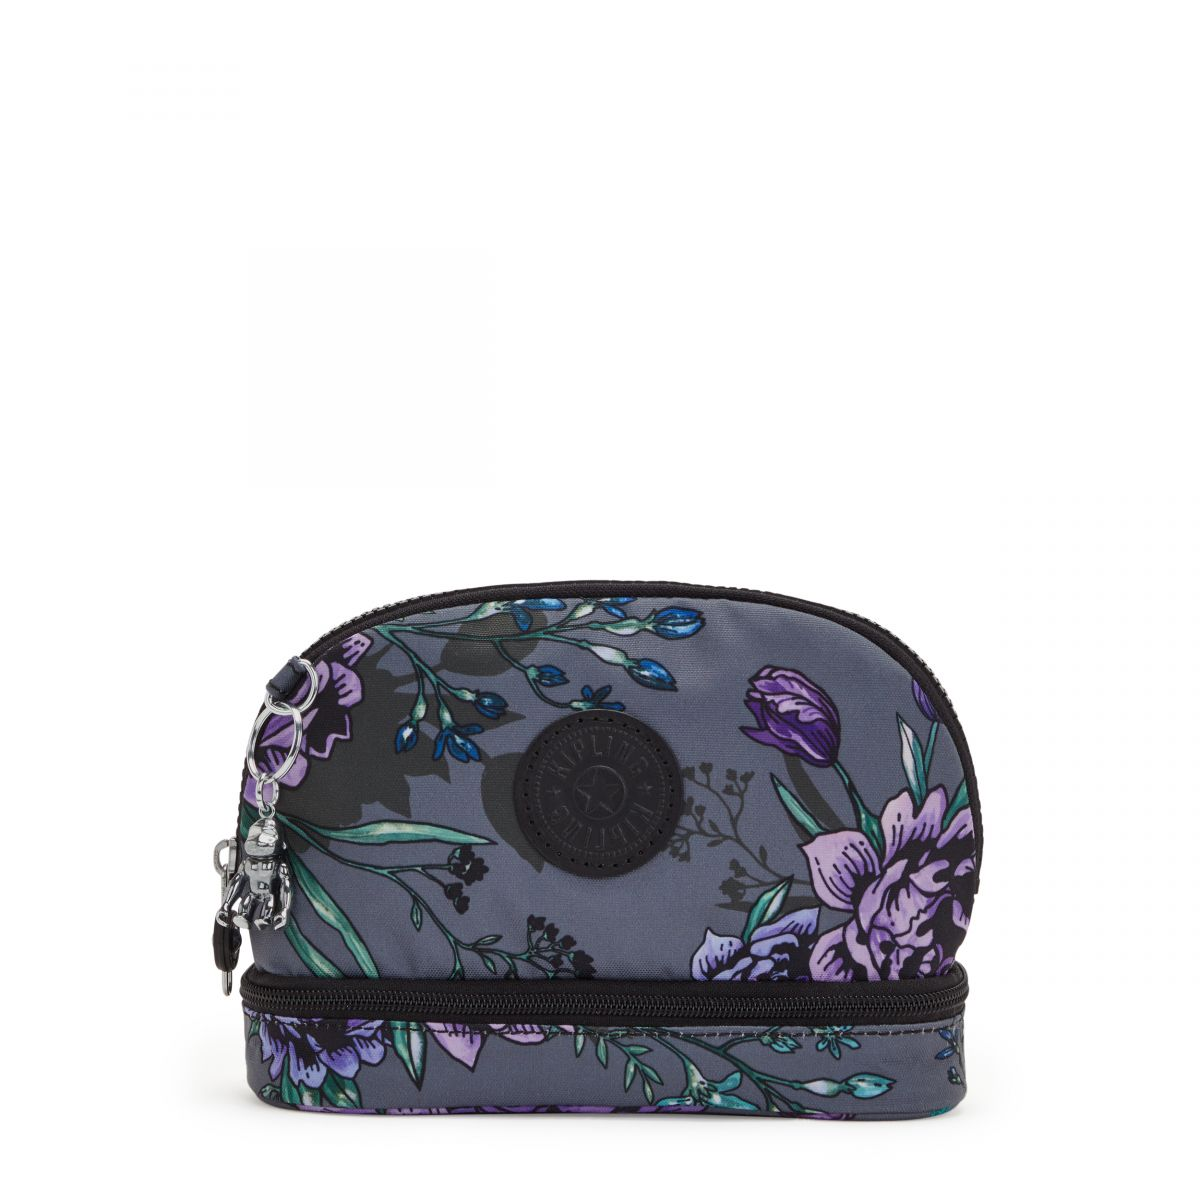 MULTI KEEPER ACCESSORIES by Kipling - Front view